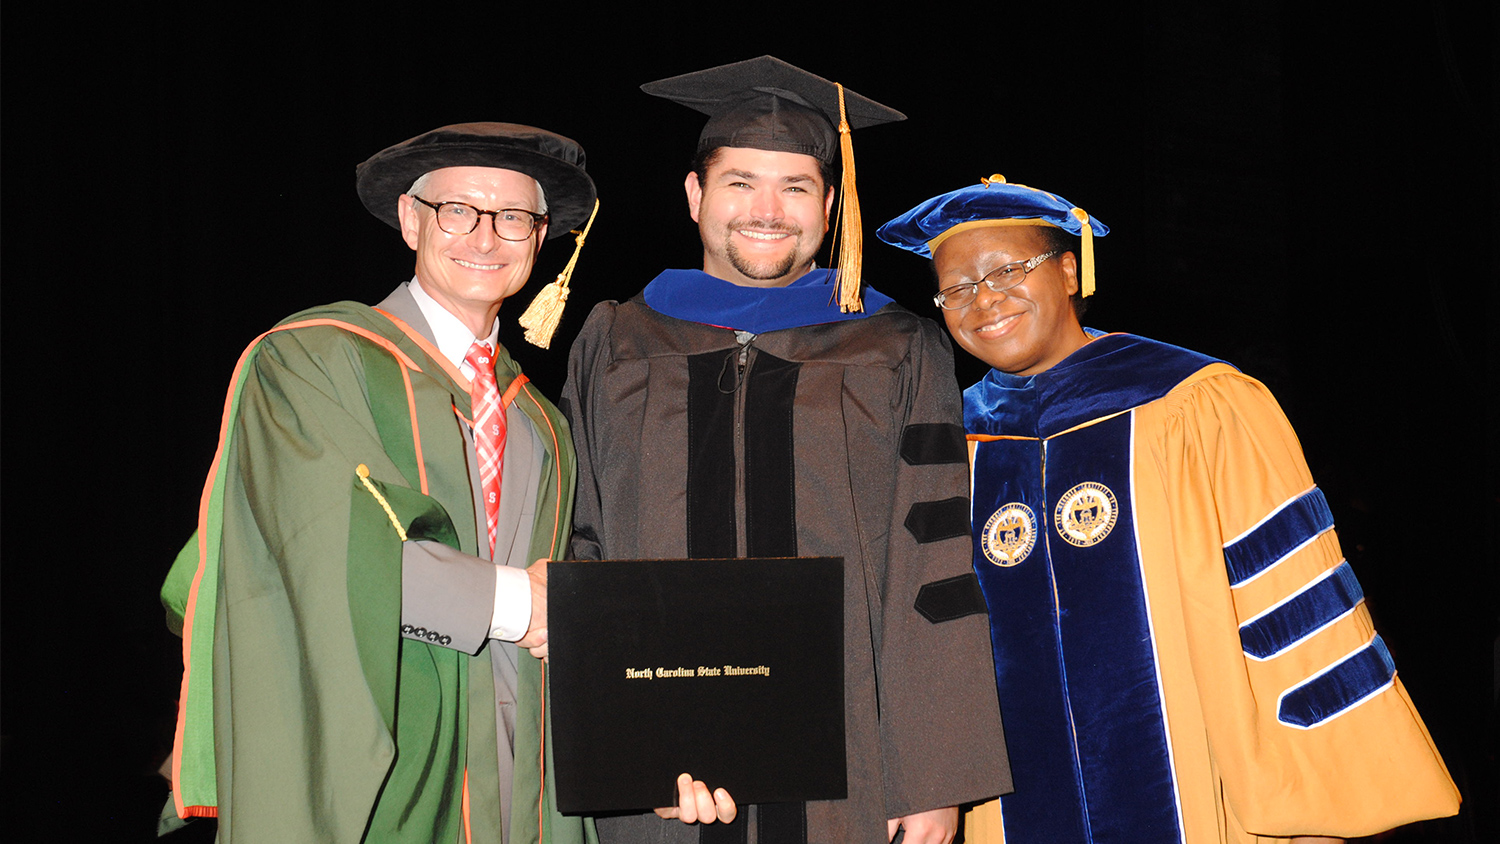 Dean Hinks, Dr. Charles Blackwell (FPS'15) and his adviser Dr. Ecrika Ford